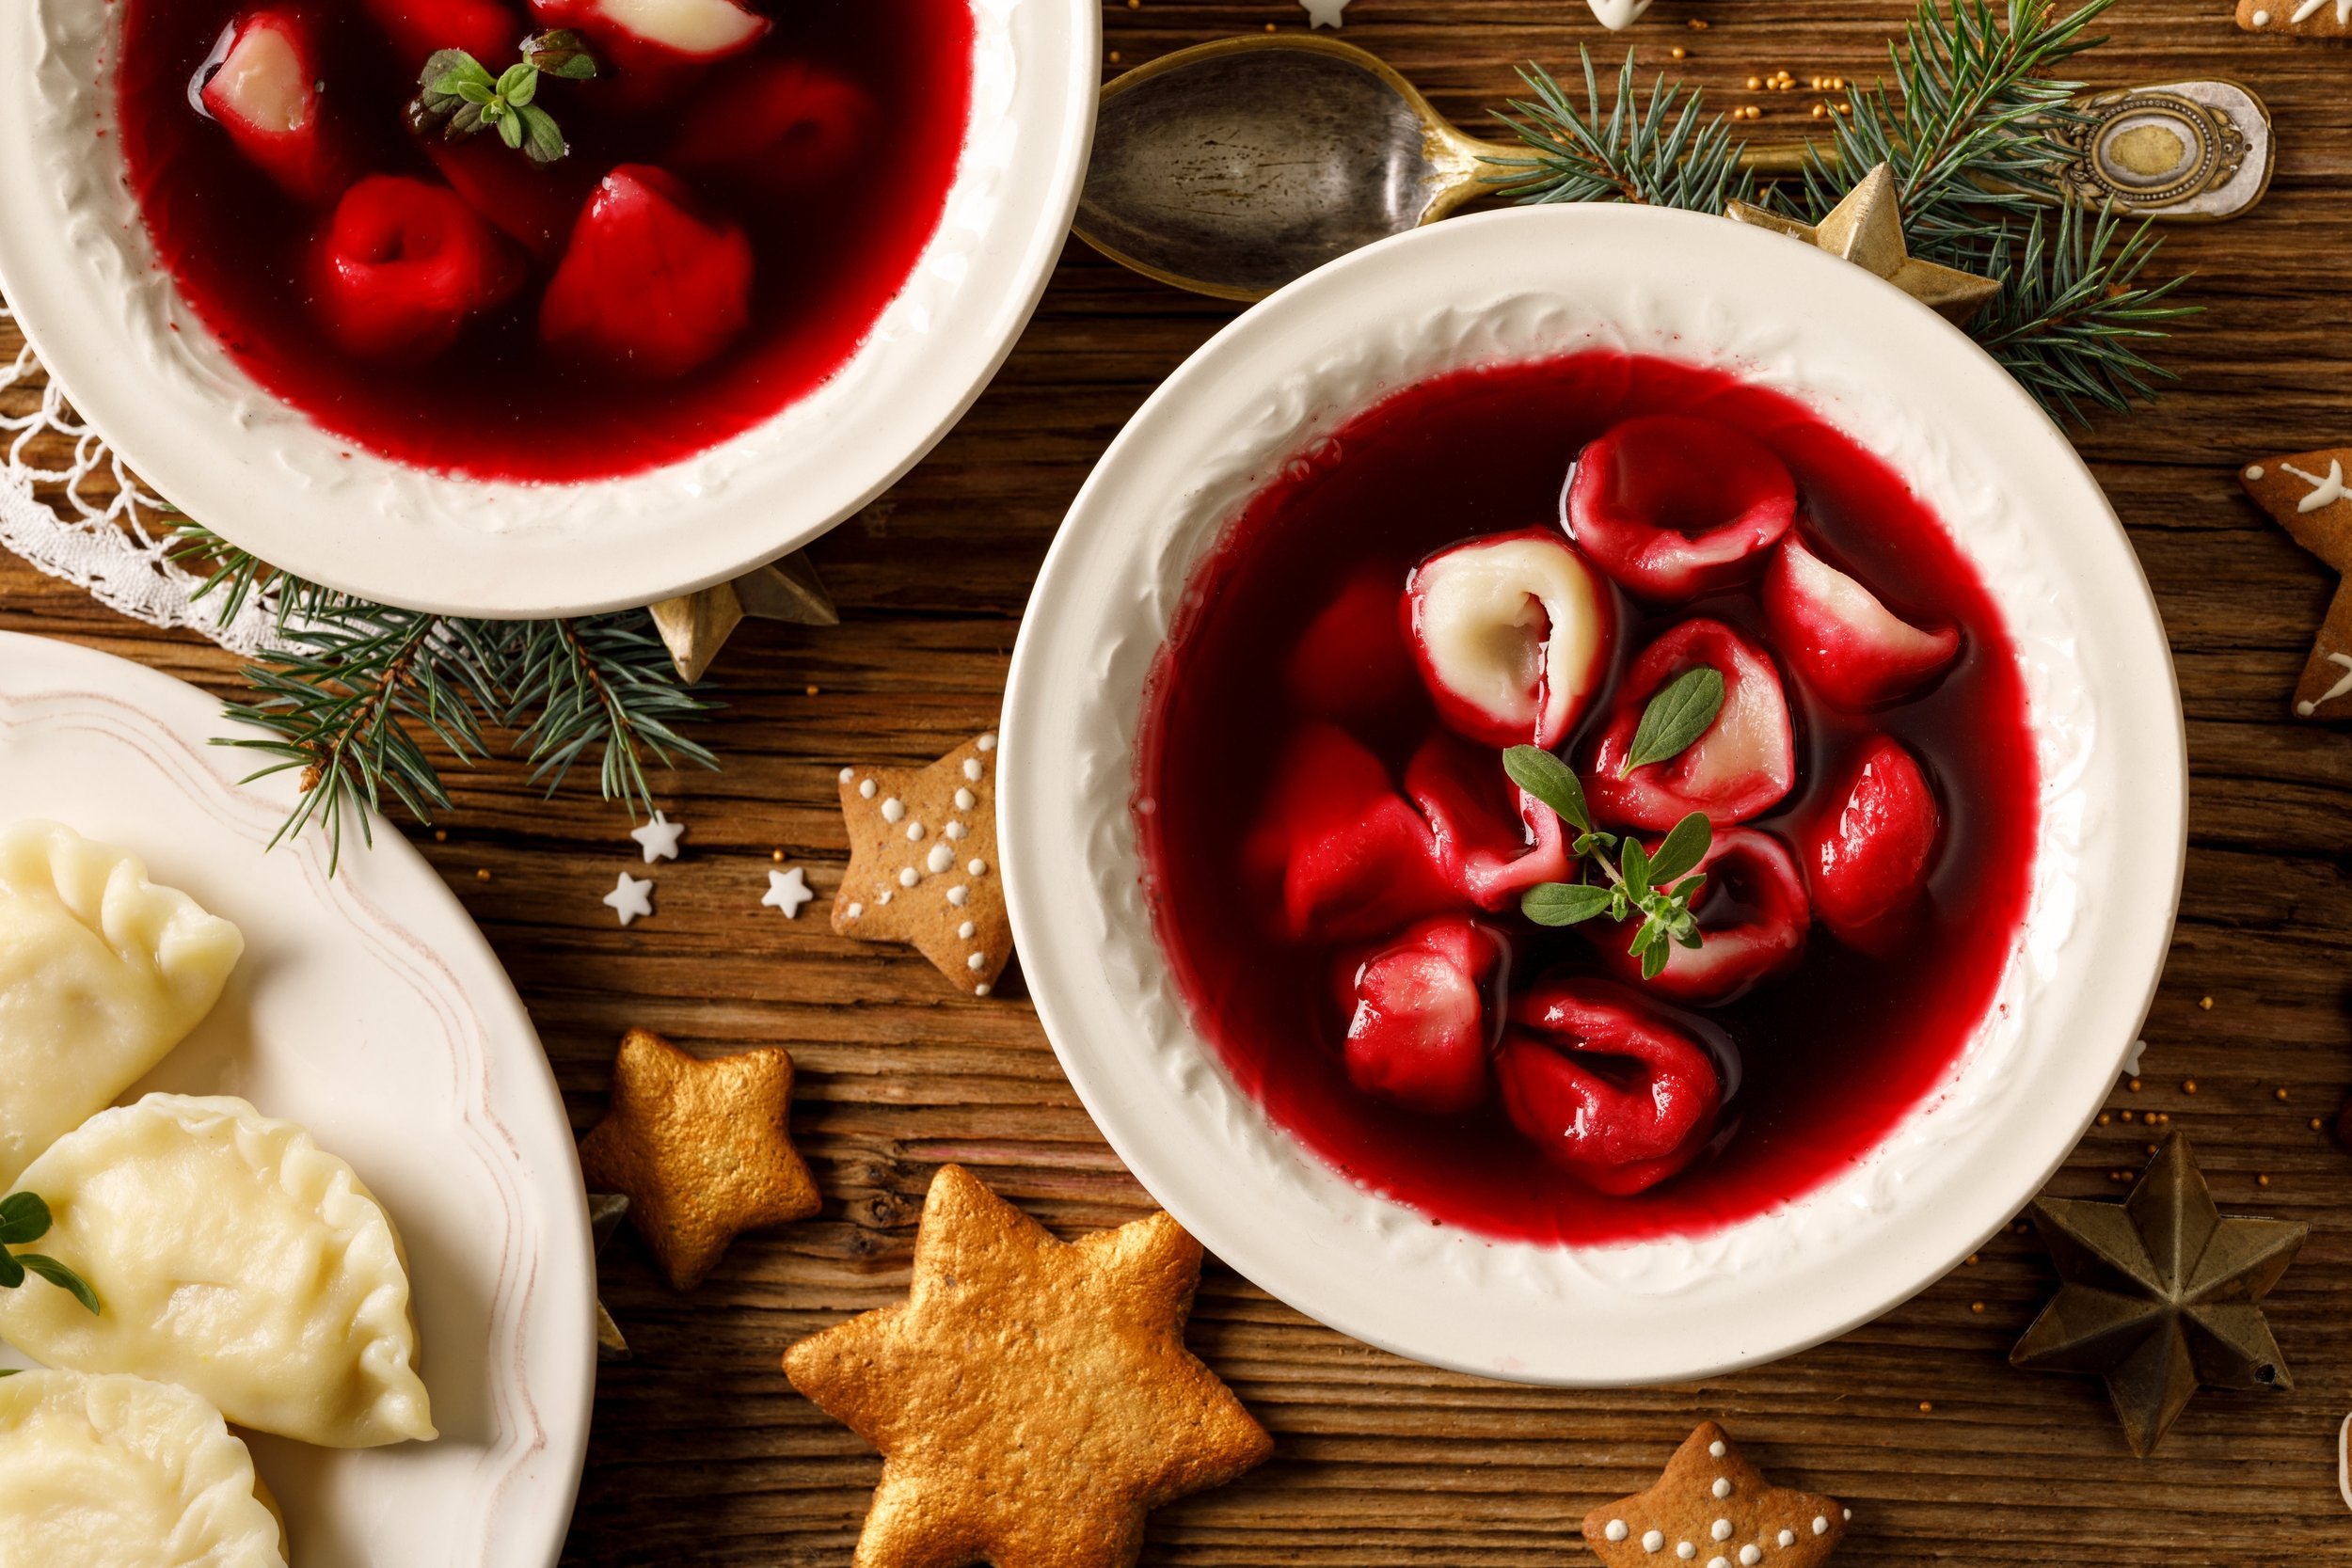 Borscht is a traditional Christmas Eve dish in Poland. Gorgeous red color from beets makes this soup a very festive course. Spice & Tea has all the ingredients to make a spectacular soup.